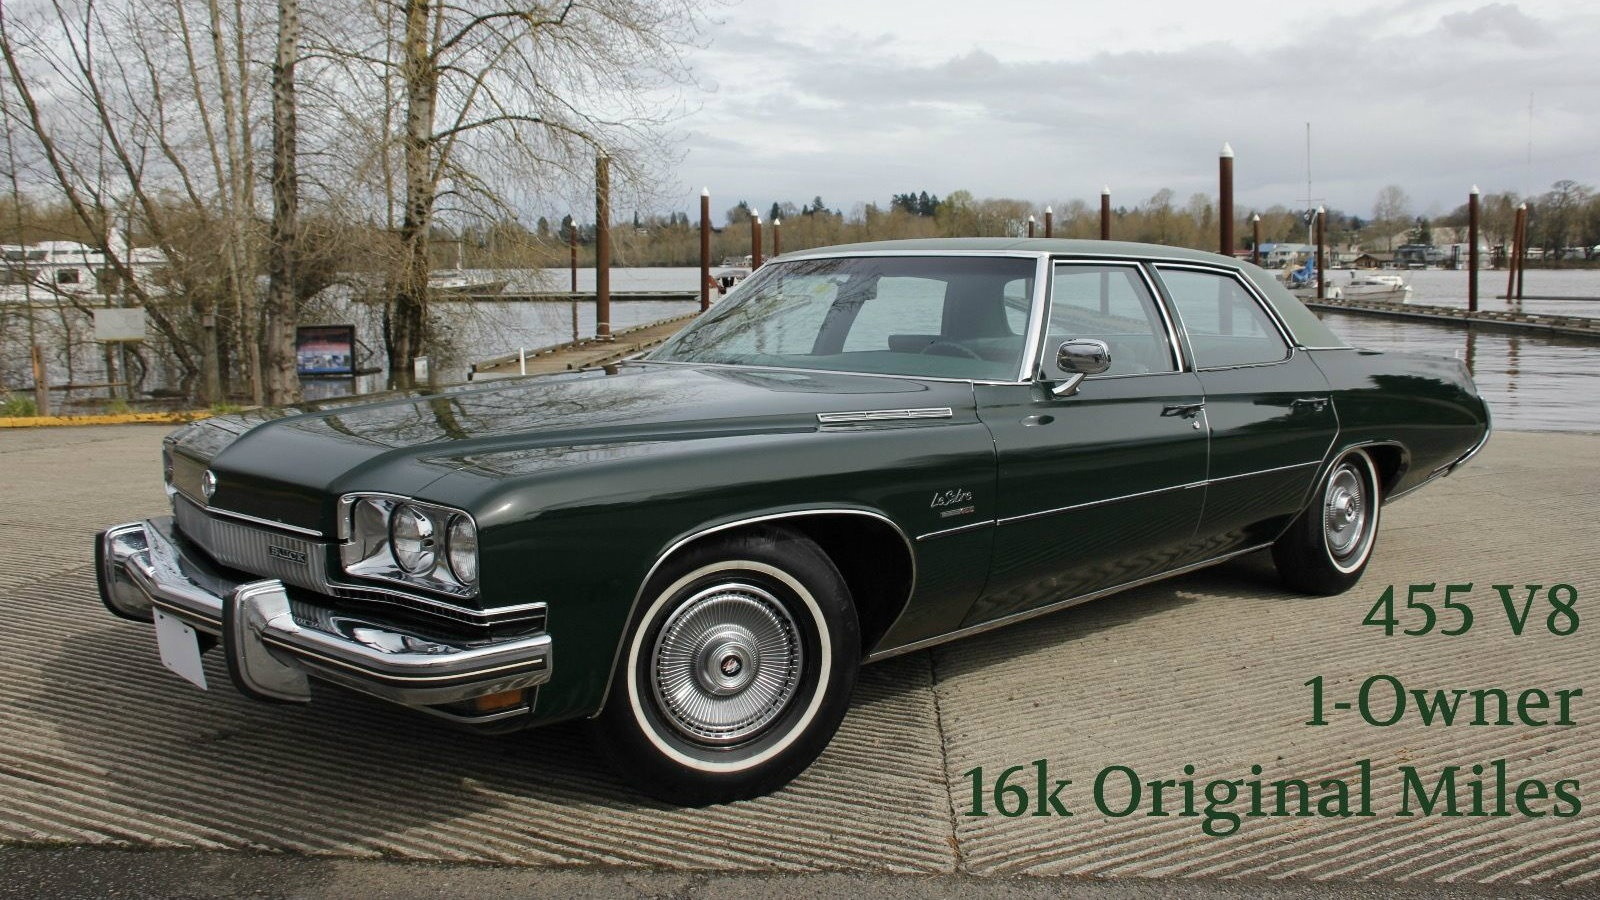 Cars For Sale Under $4000 >> Plain Green Wrapper! 1973 Buick LeSabre With 16k Miles